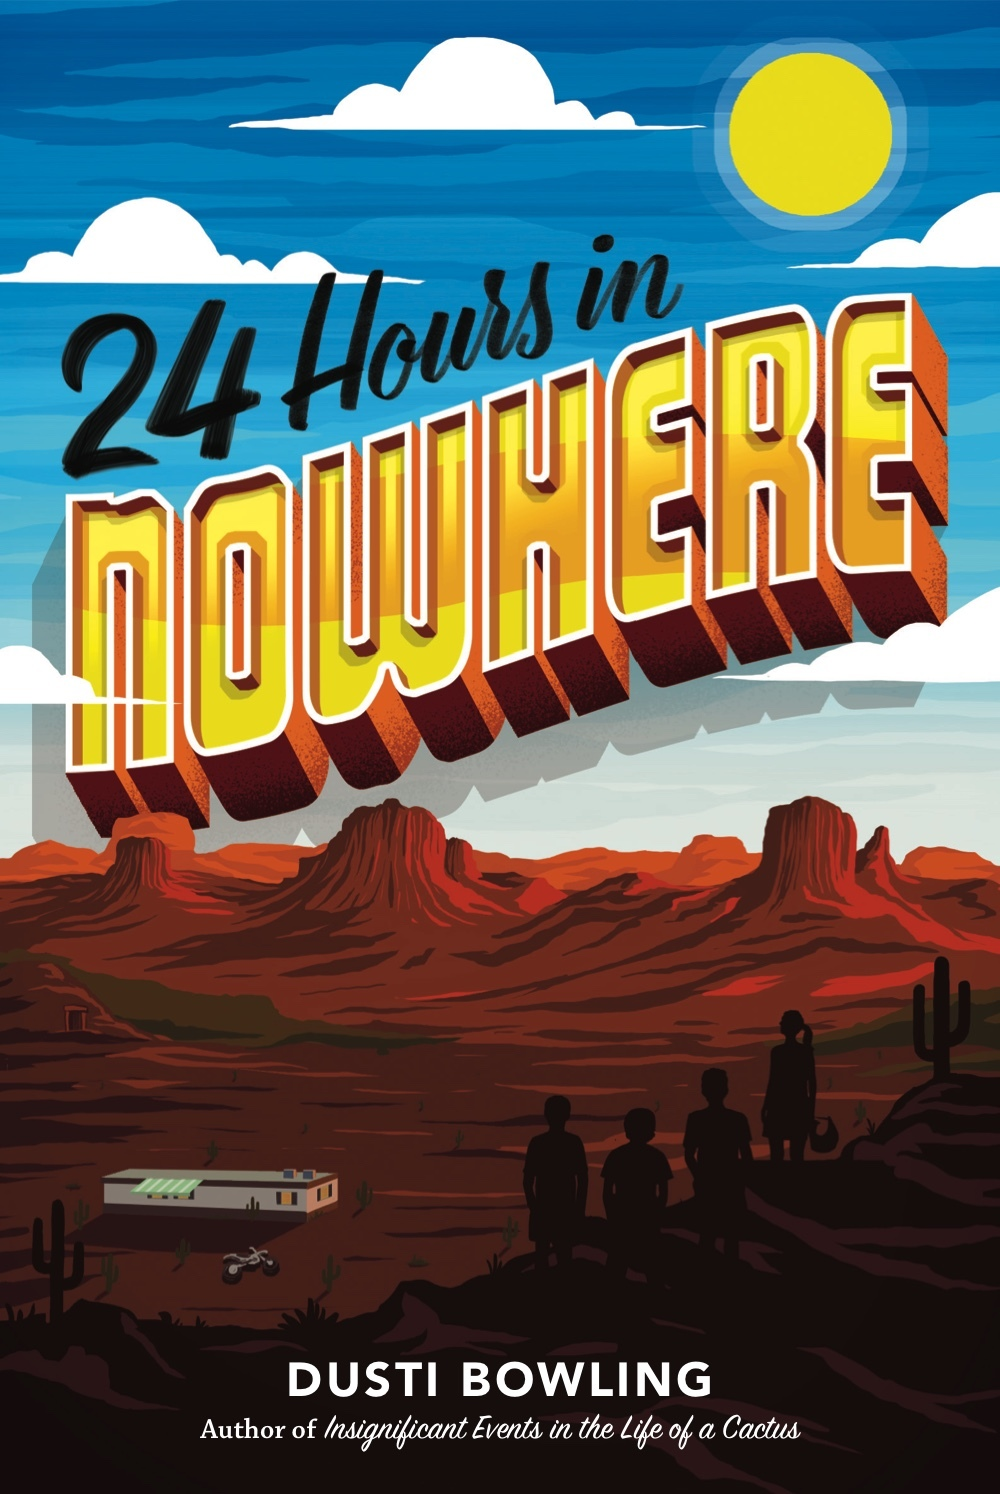 24 Hours in Nowhere Dusti Bowling